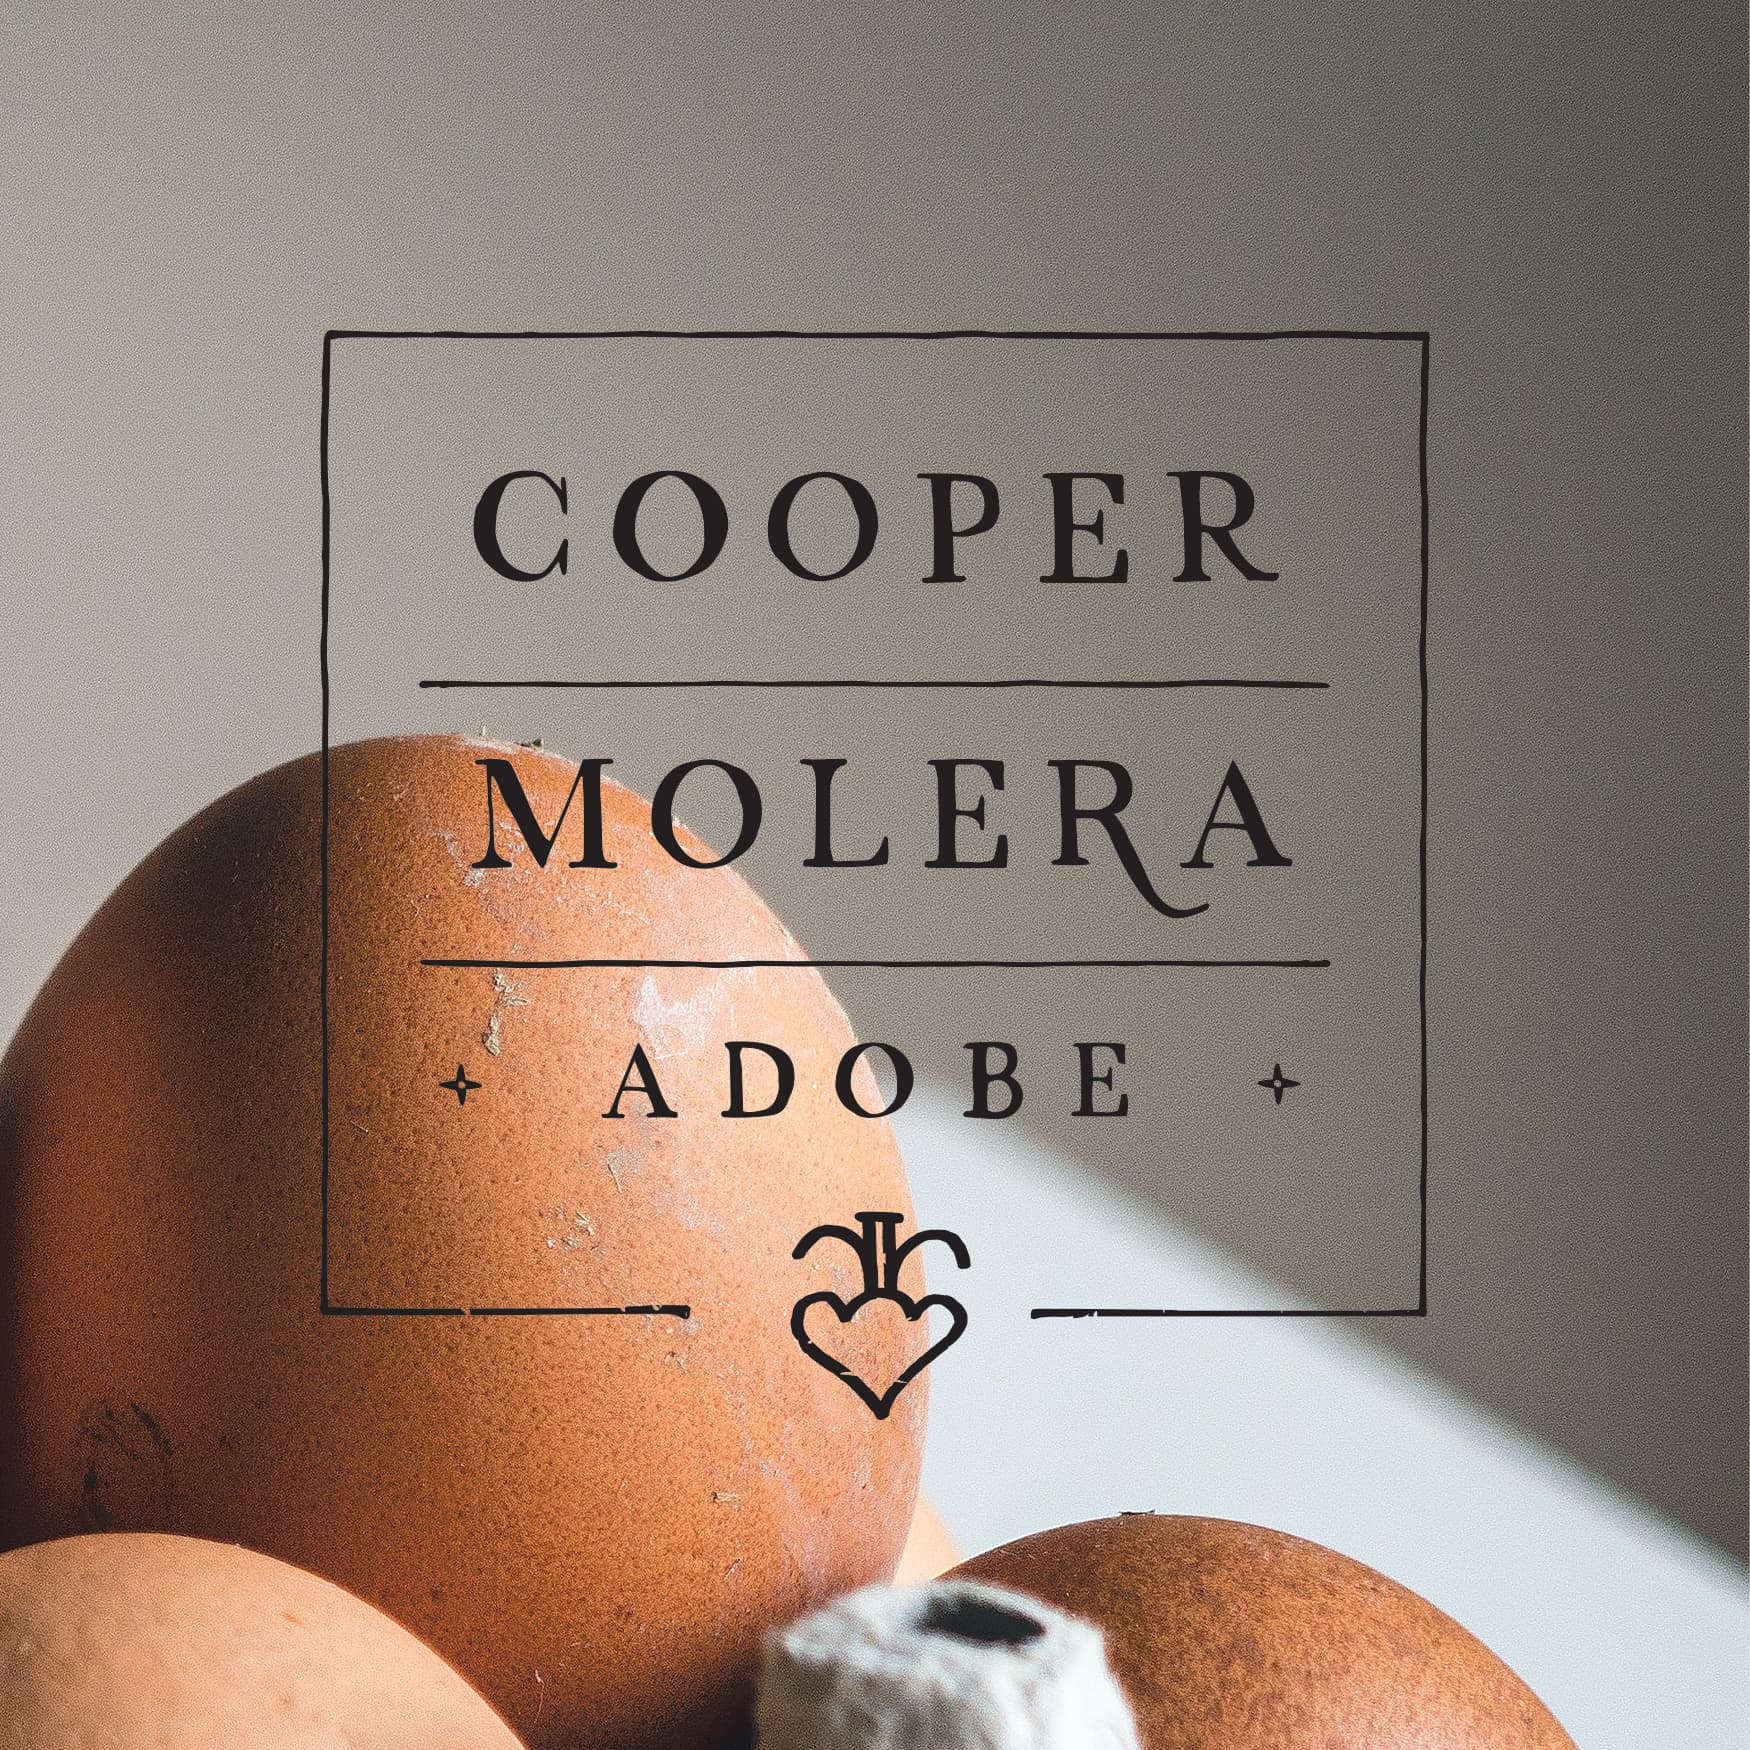 RSM Design branding and logo design services for Cooper Molera Adobe, in Monterey, California,  is a historic property jointly managed with the National Trust for Historic Preservation